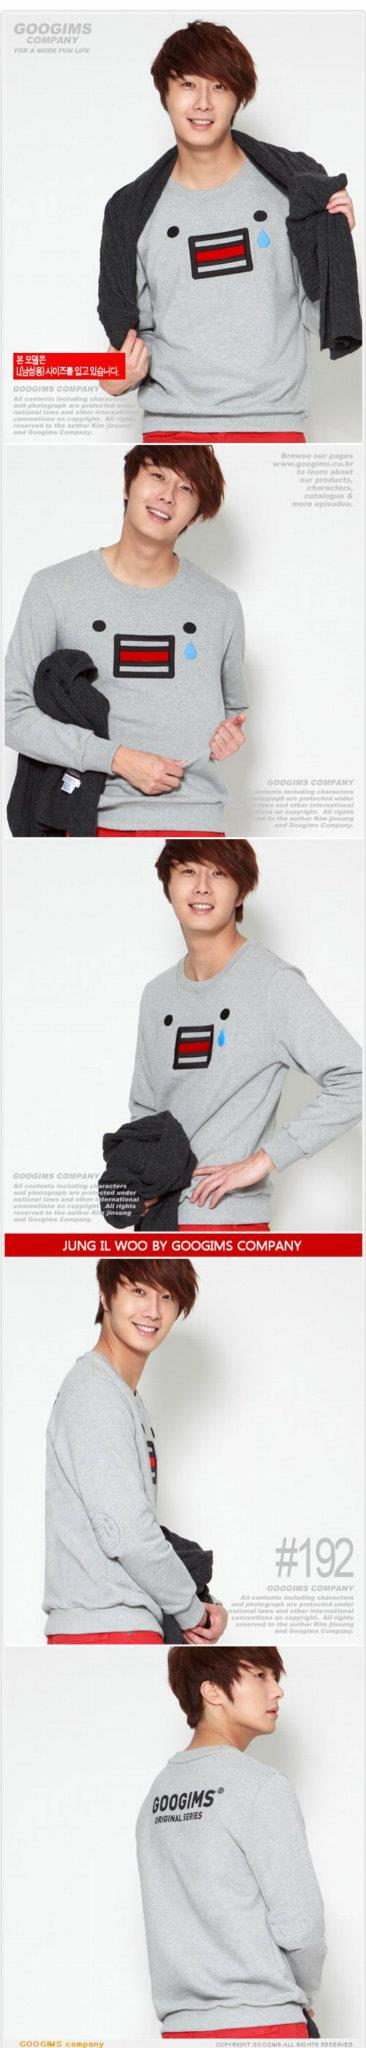 2011 10 Jung II-woo for Googims. Part 100056